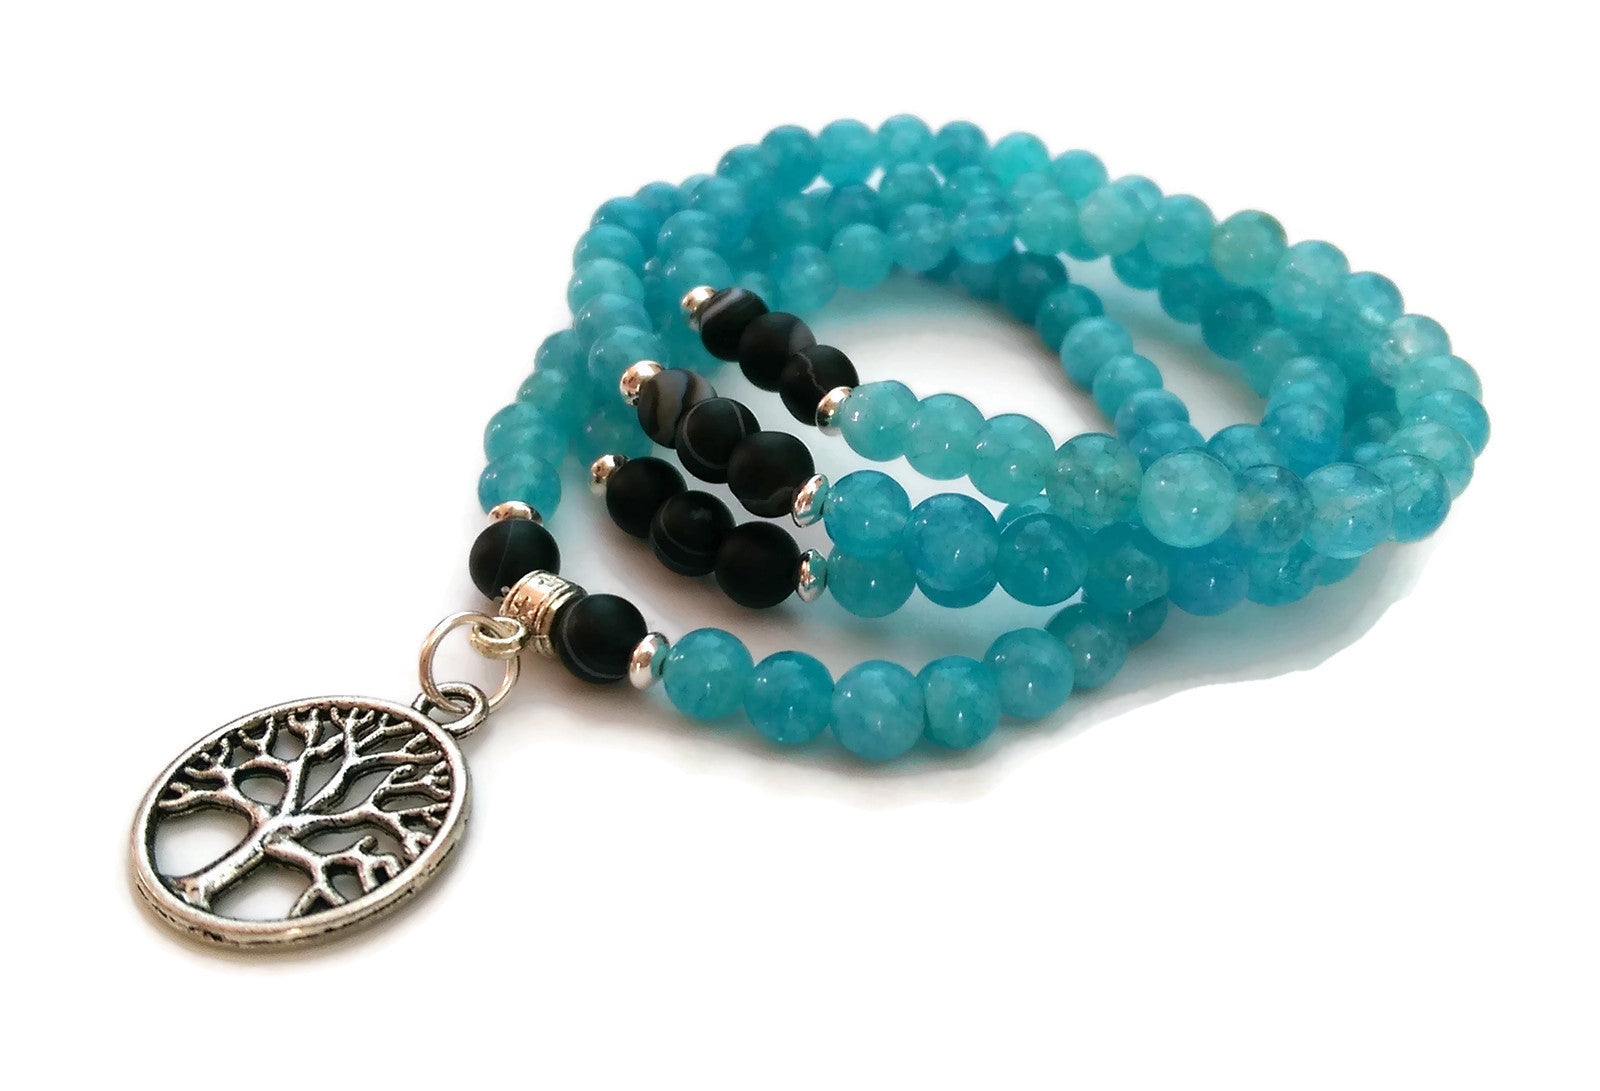 6mm Aquamarine and Dzi Beads with 925 Silver Wrist Wrap Mala Bracelet with Tree of Life Charm